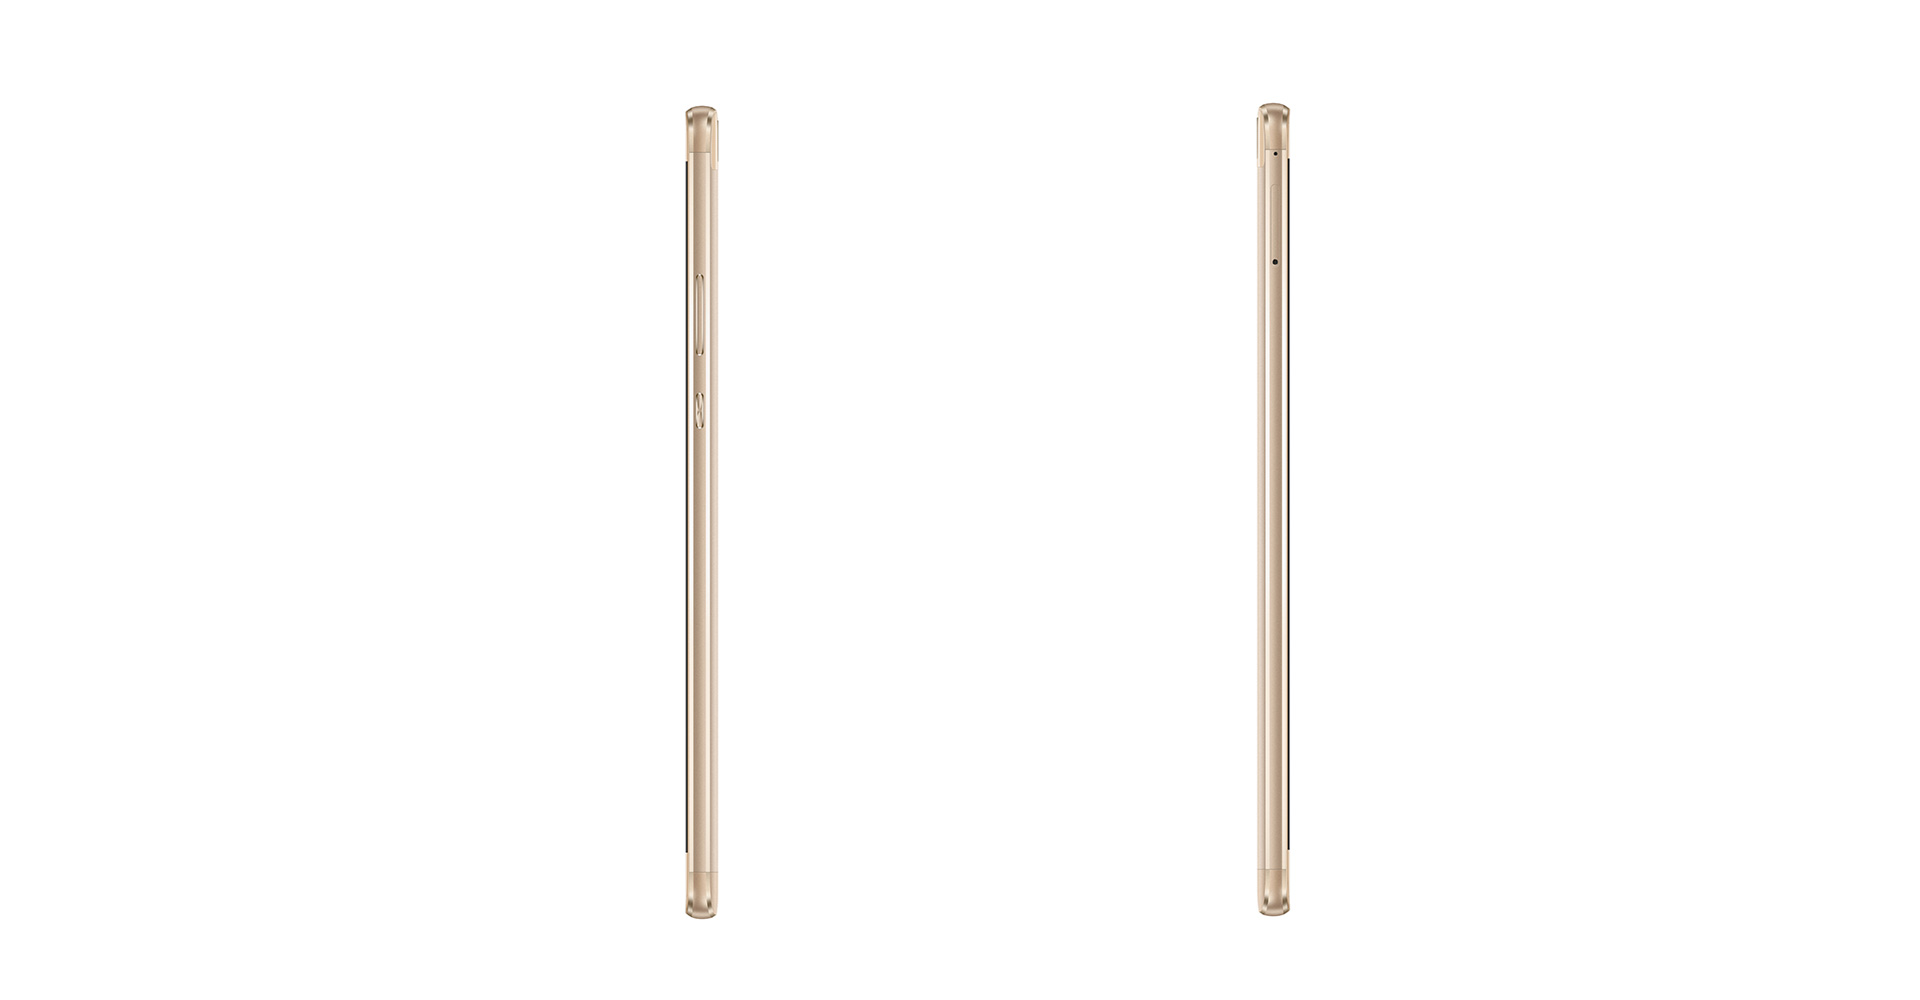 huawei honor 8 sides